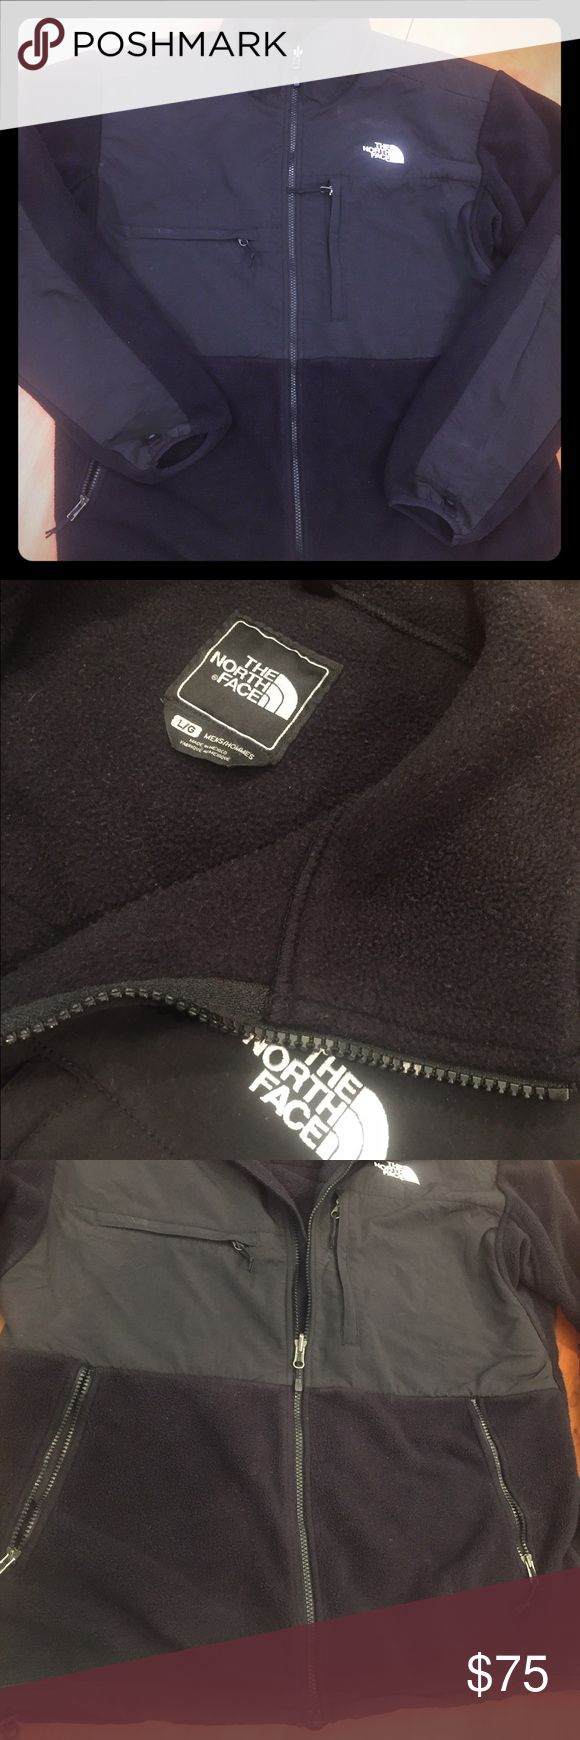 North Face Men's Fleece Jacket This black men's north face fleece jacket is clean and in good condition. Comes from non smoking home.  No stains or rips. North Face Jackets & Coats